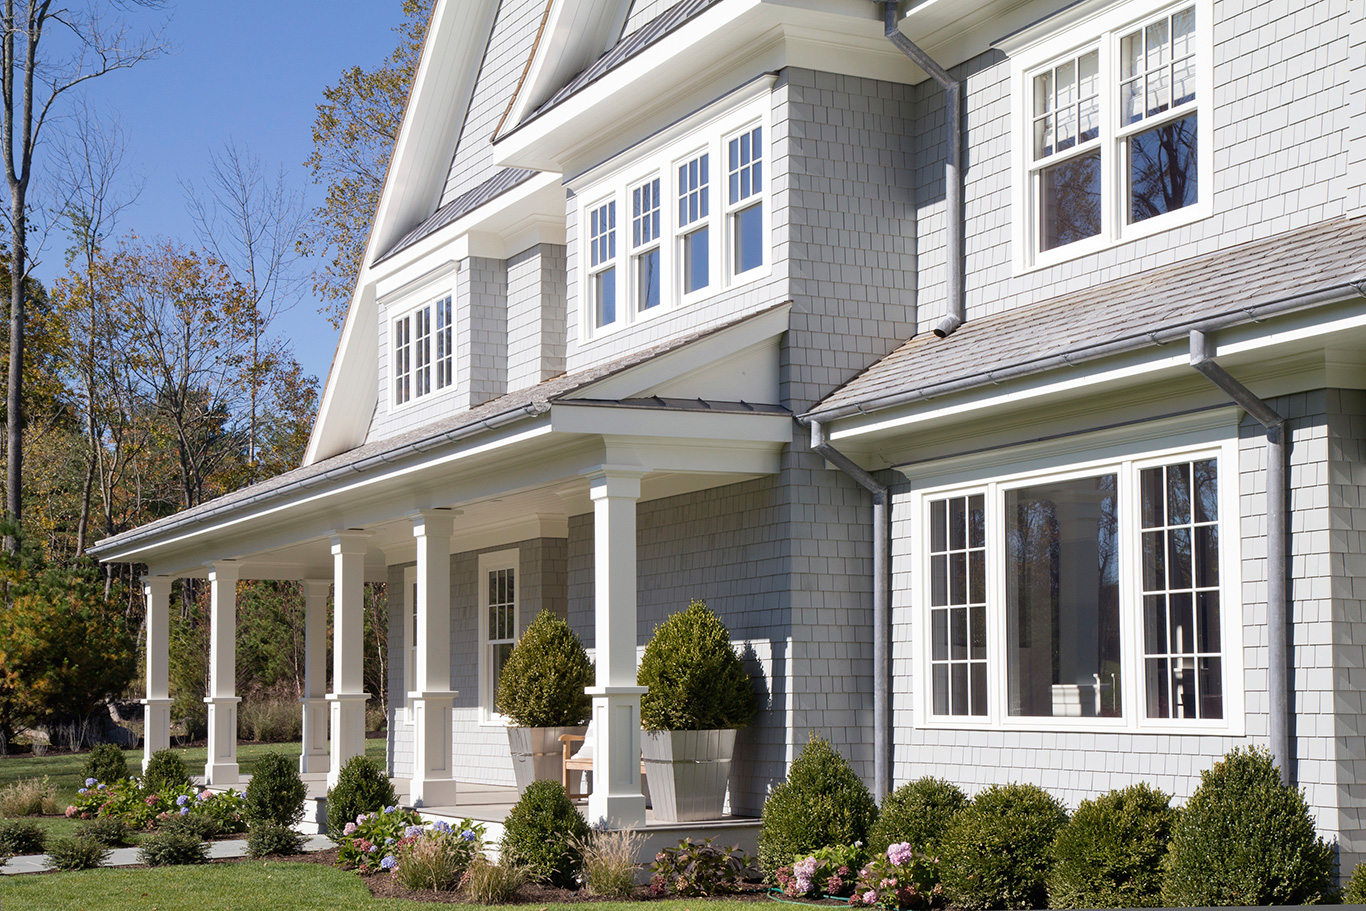 NEW CANAAN, CT<br>Canoe Hill Road<br><a href='http://shorelinepaintingct.com/portfolio/canoe-hill-rd-new-canaan-ct/'>Go to link</a>